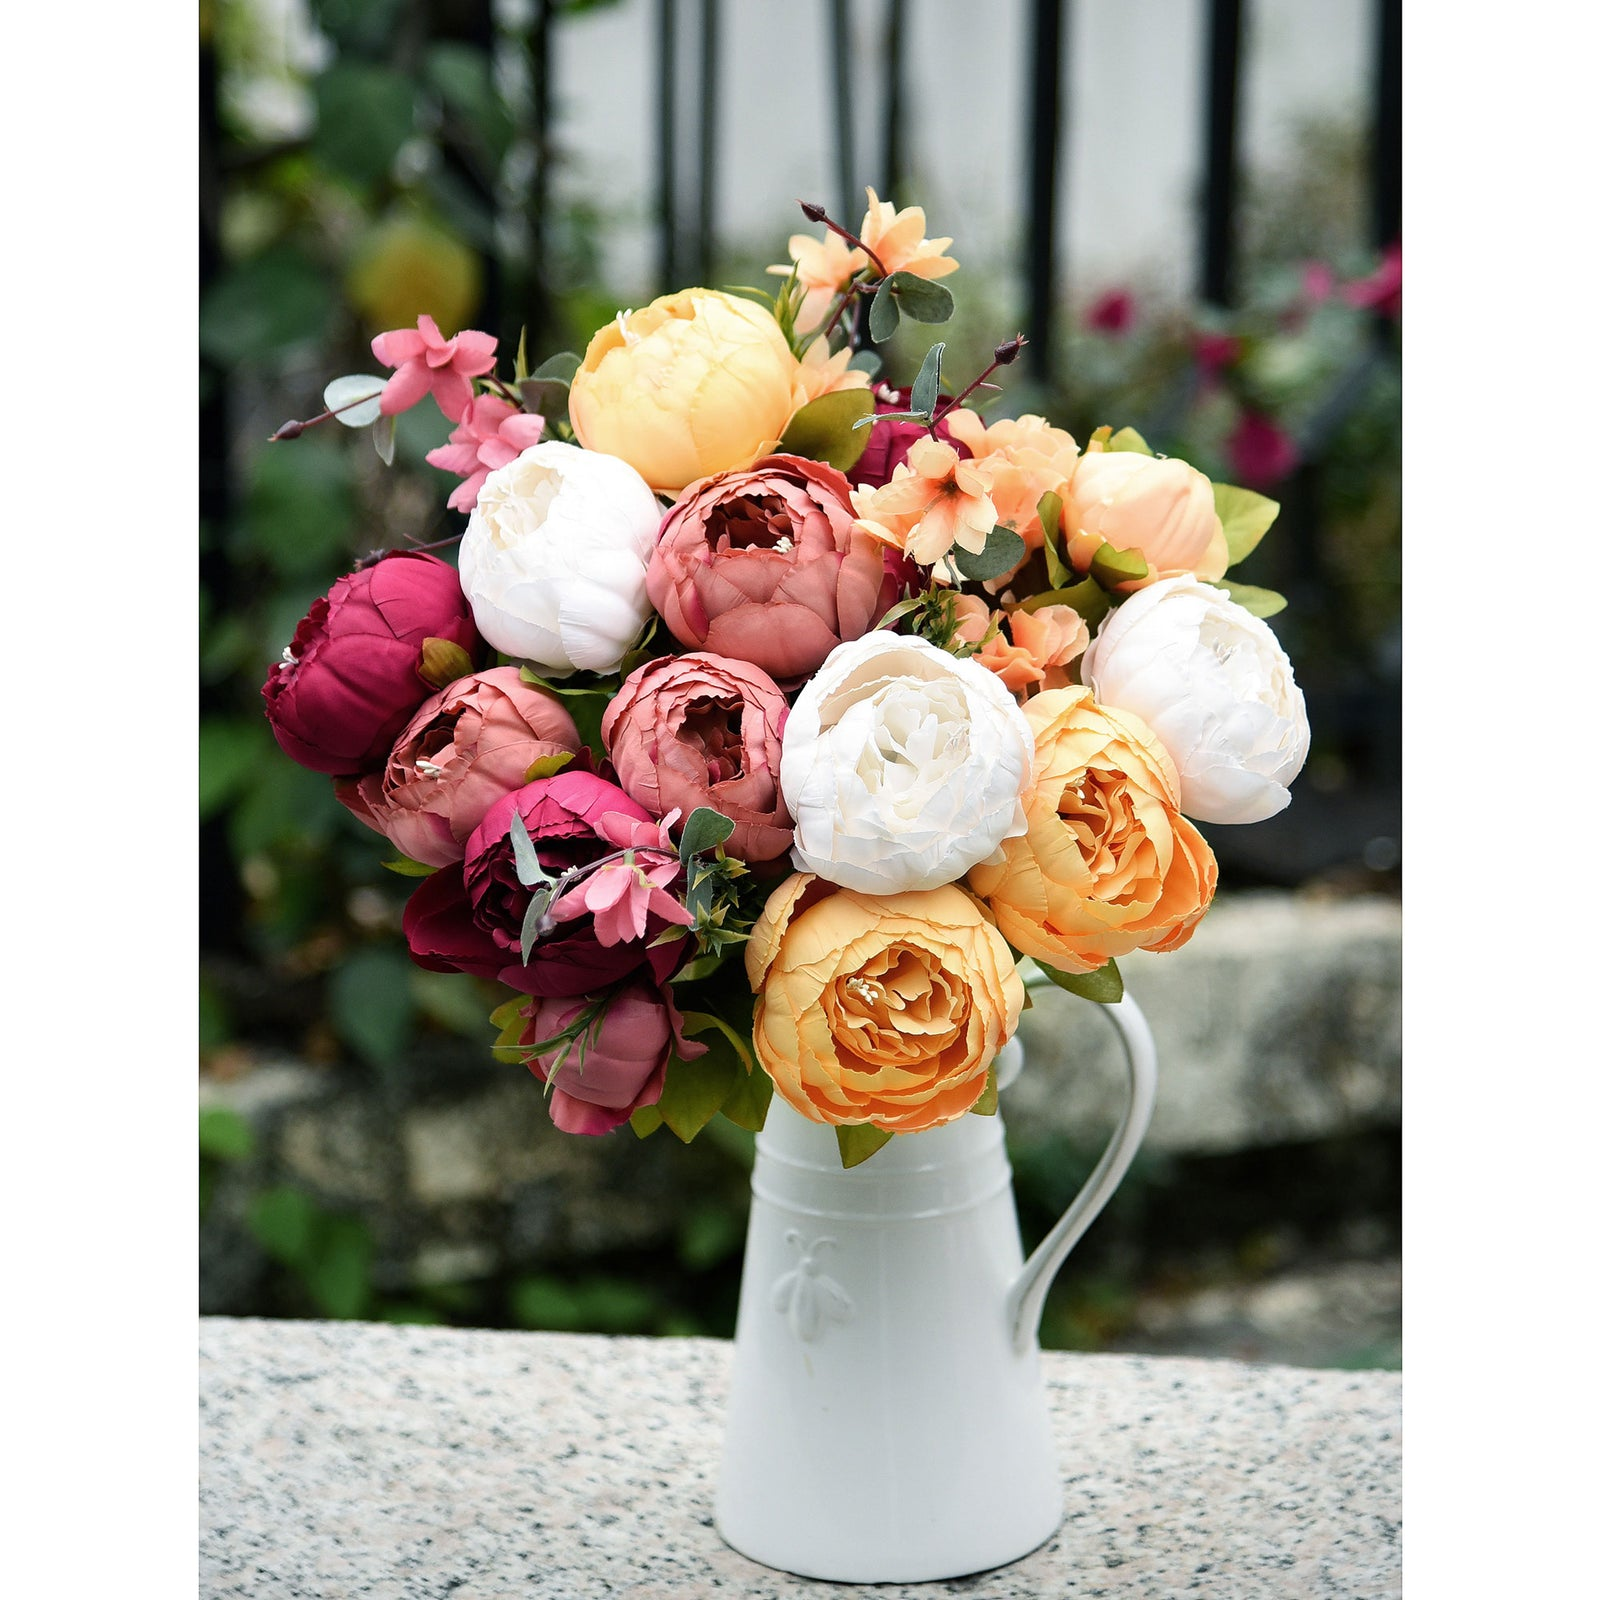 FiveSeasonStuff 2 Bundles (Country Delightful) Silk Peonies Artificial Flower Bouquet